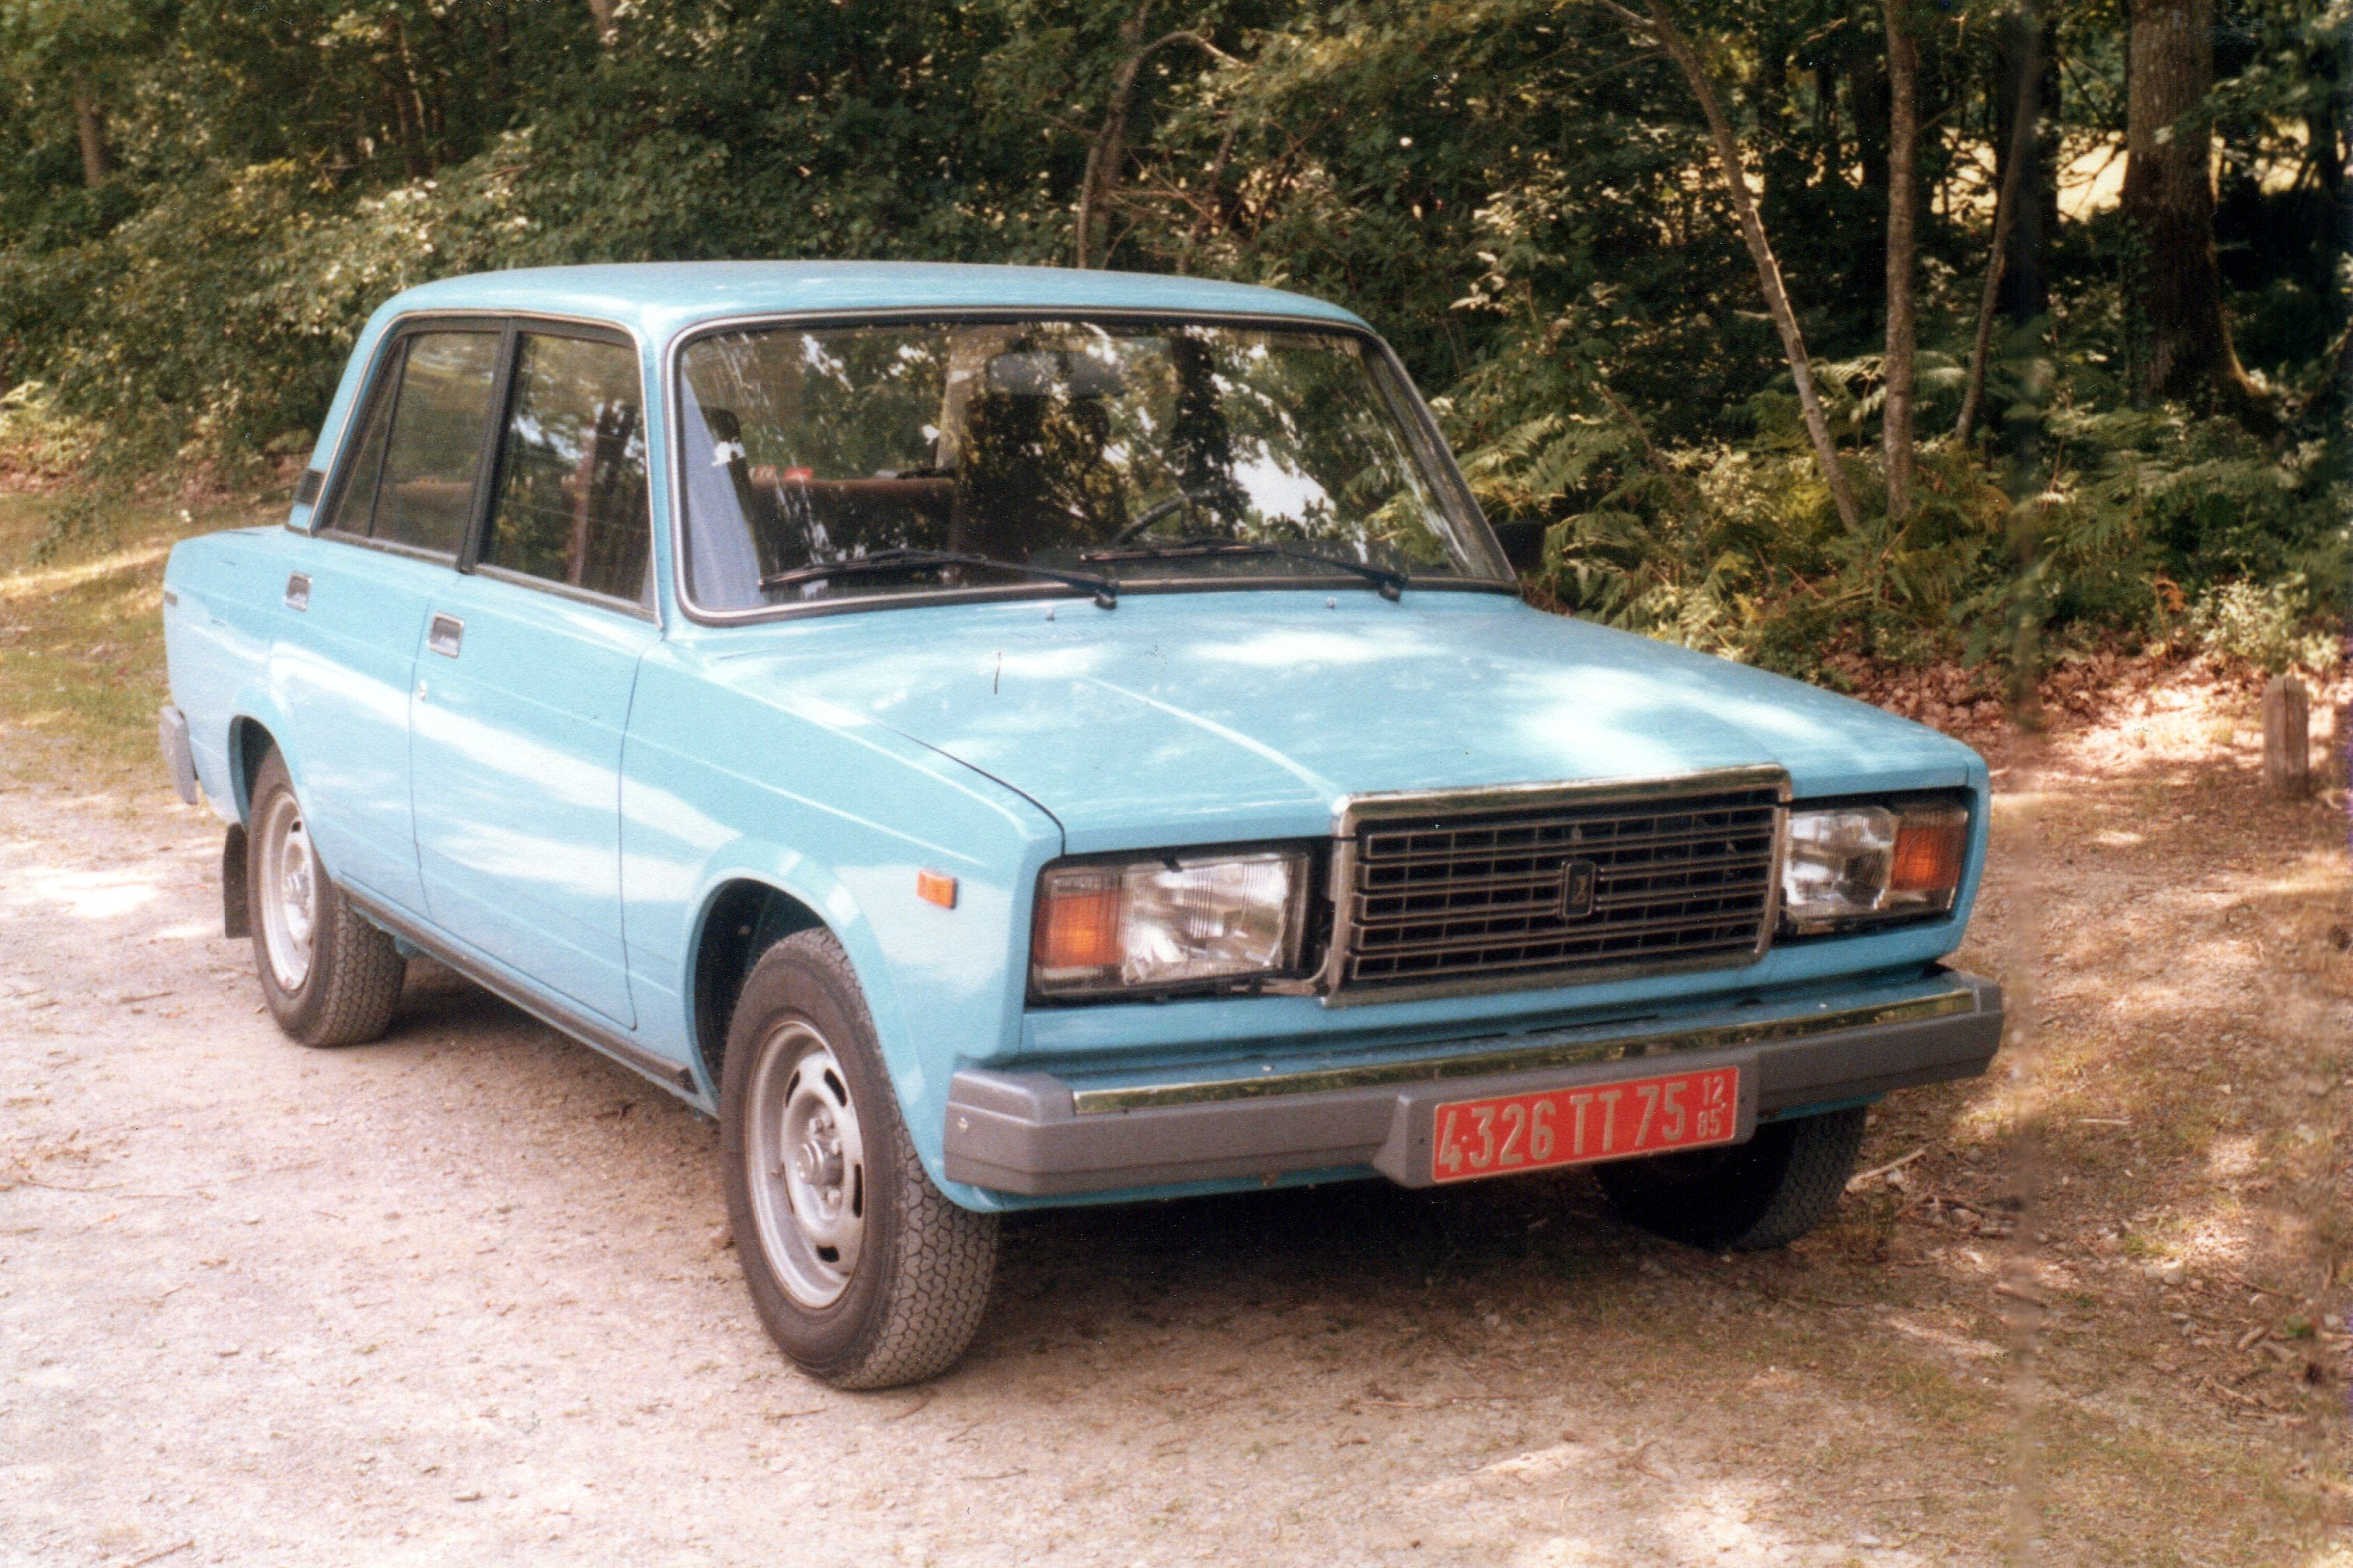 File:Lada 2107 in France.jpg